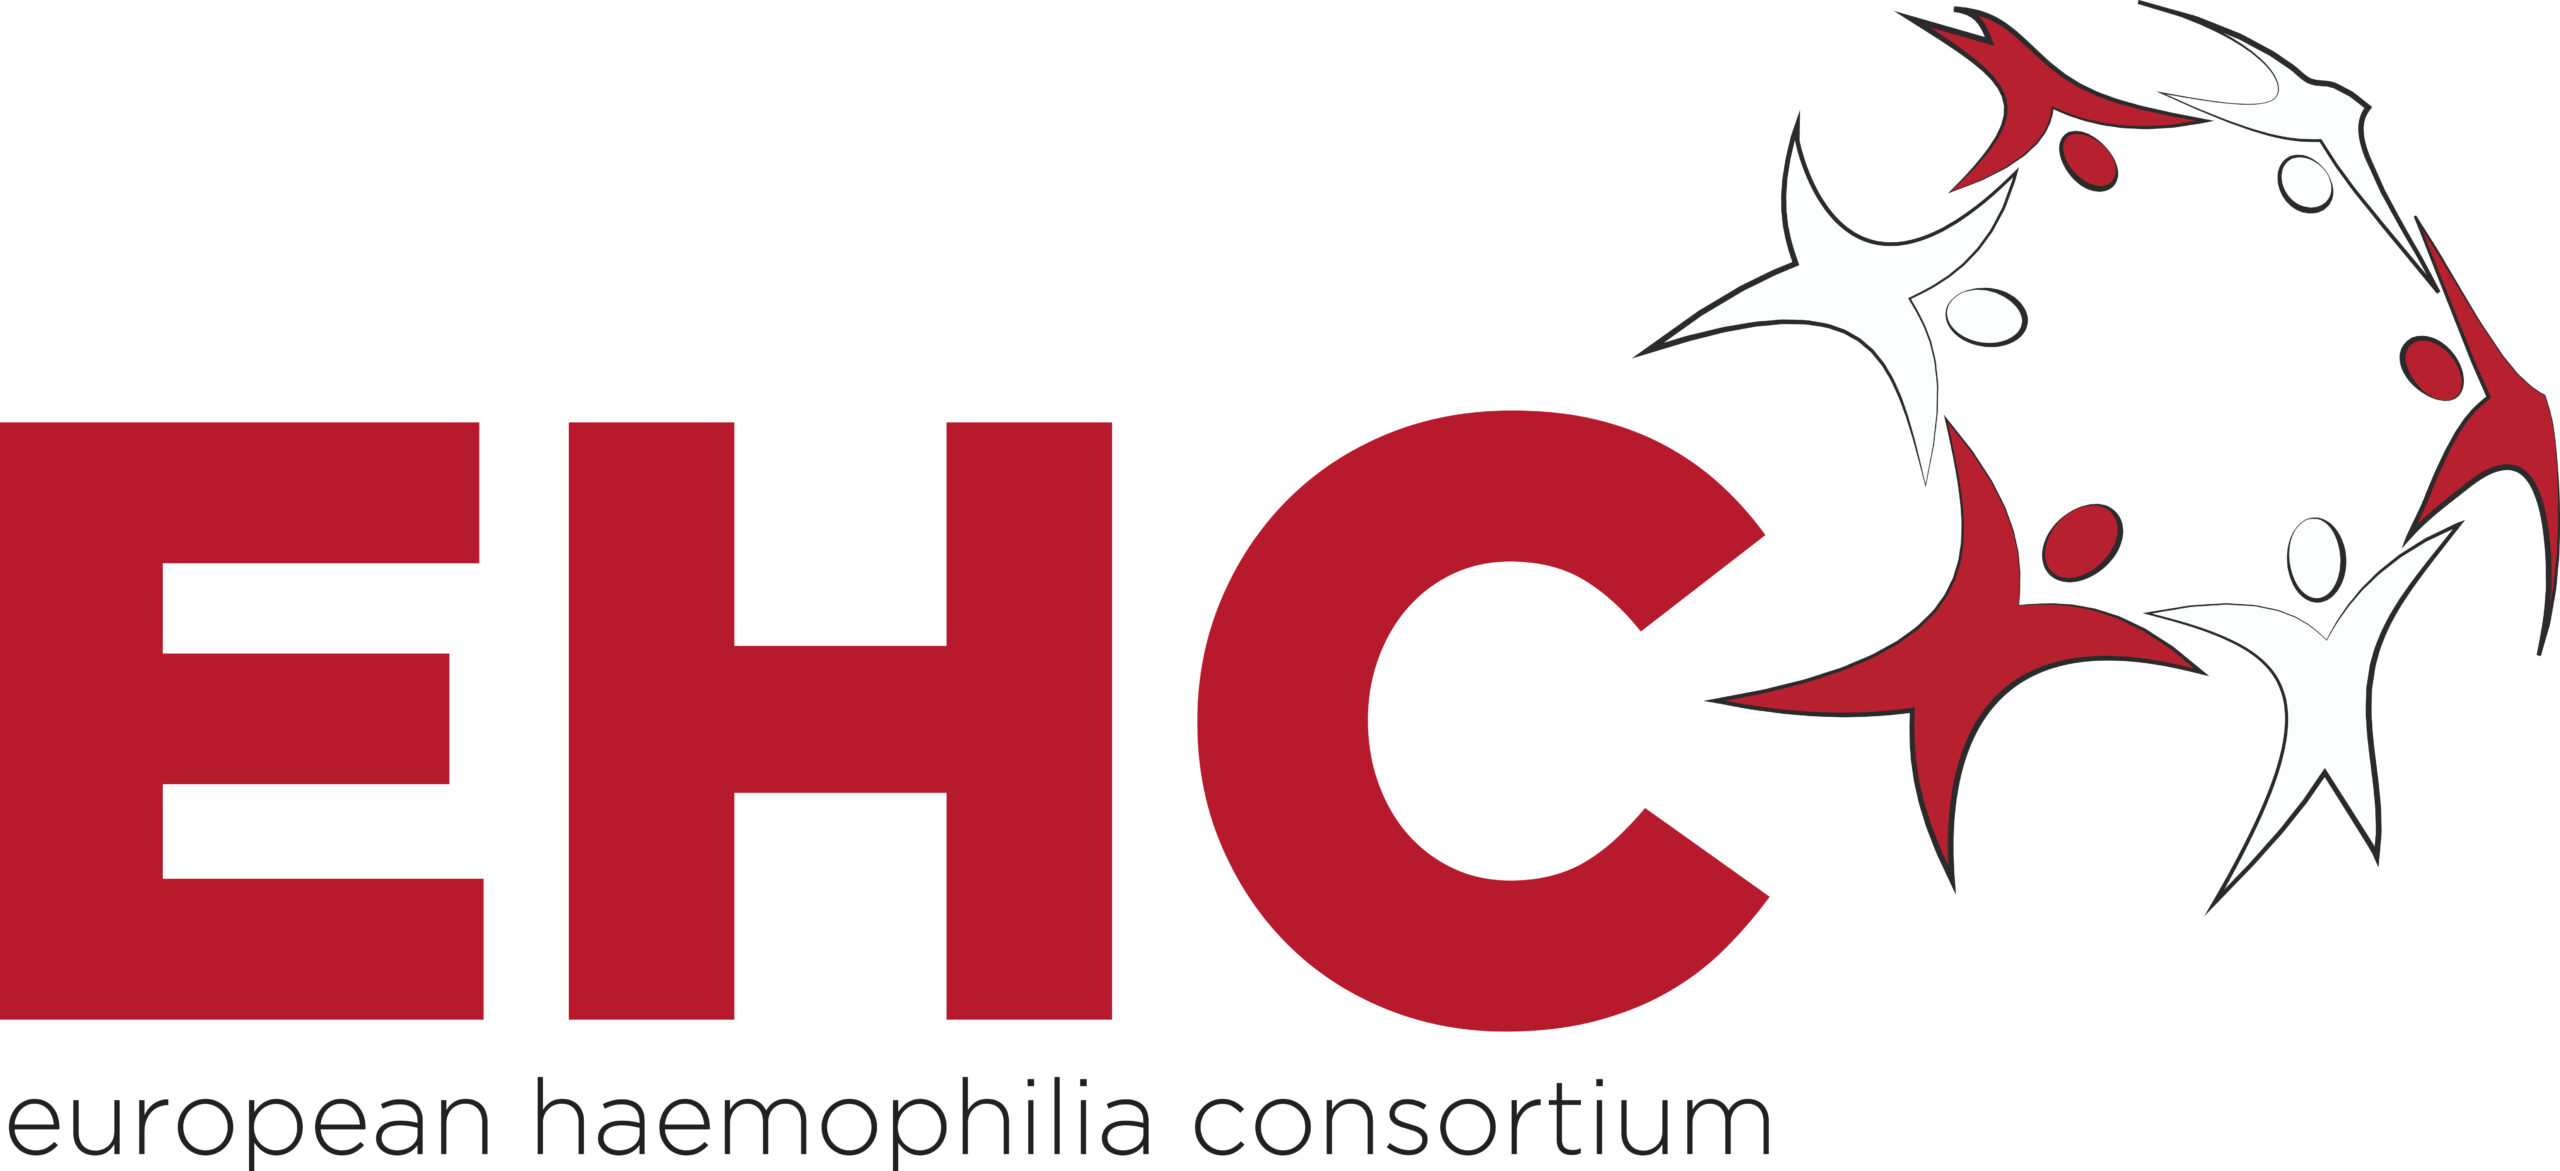 EHC – European Haemophilia Consortium -  - /ehc-kickstarts-think-tank-and-welcomes-new-team-member/